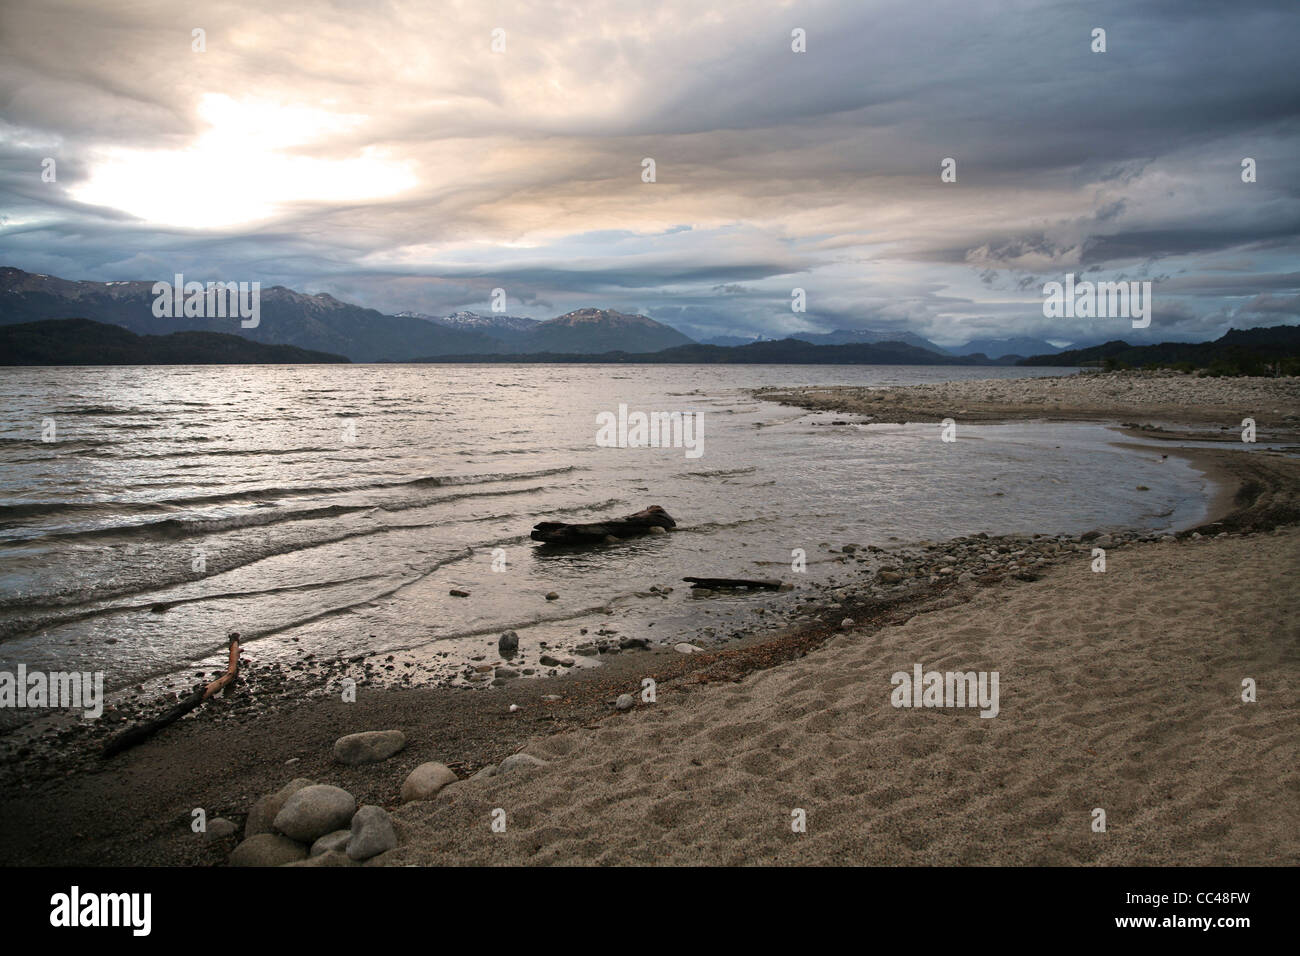 Nahuel Huapi Lake / Lago Nahuel Huapí and the Andes in the background, Patagonia, Argentina - Stock Image